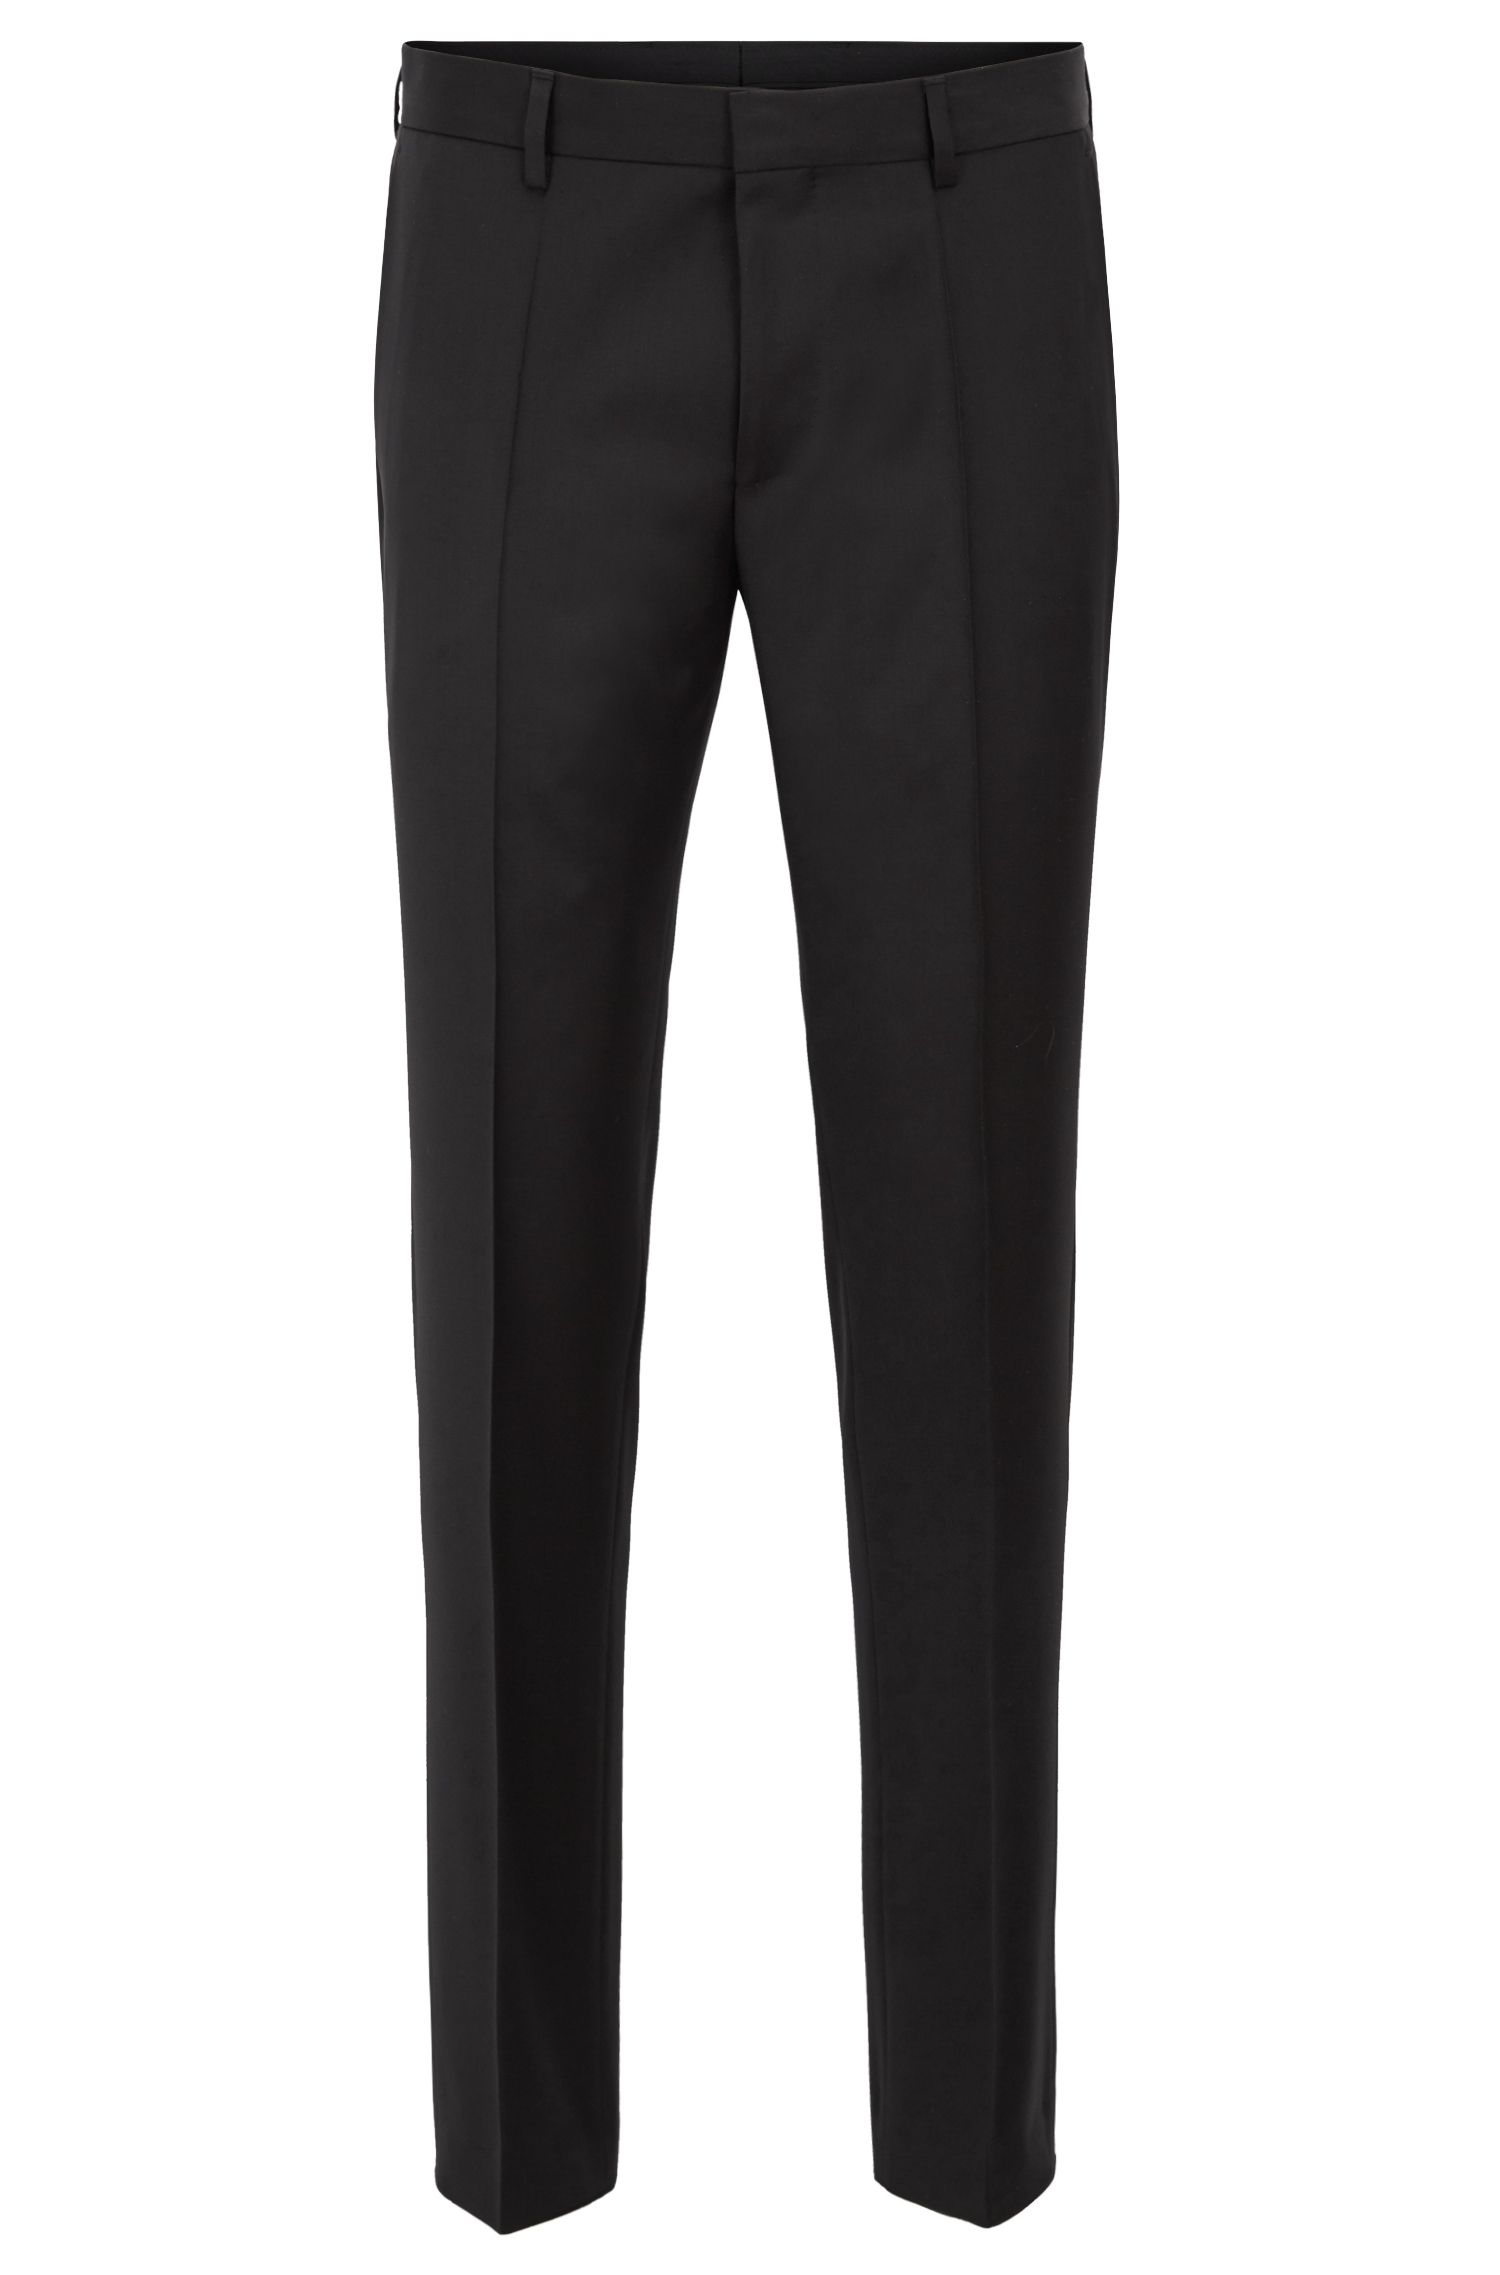 Virgin Wool Dress Pants, Slim Fit | Gibson CYL